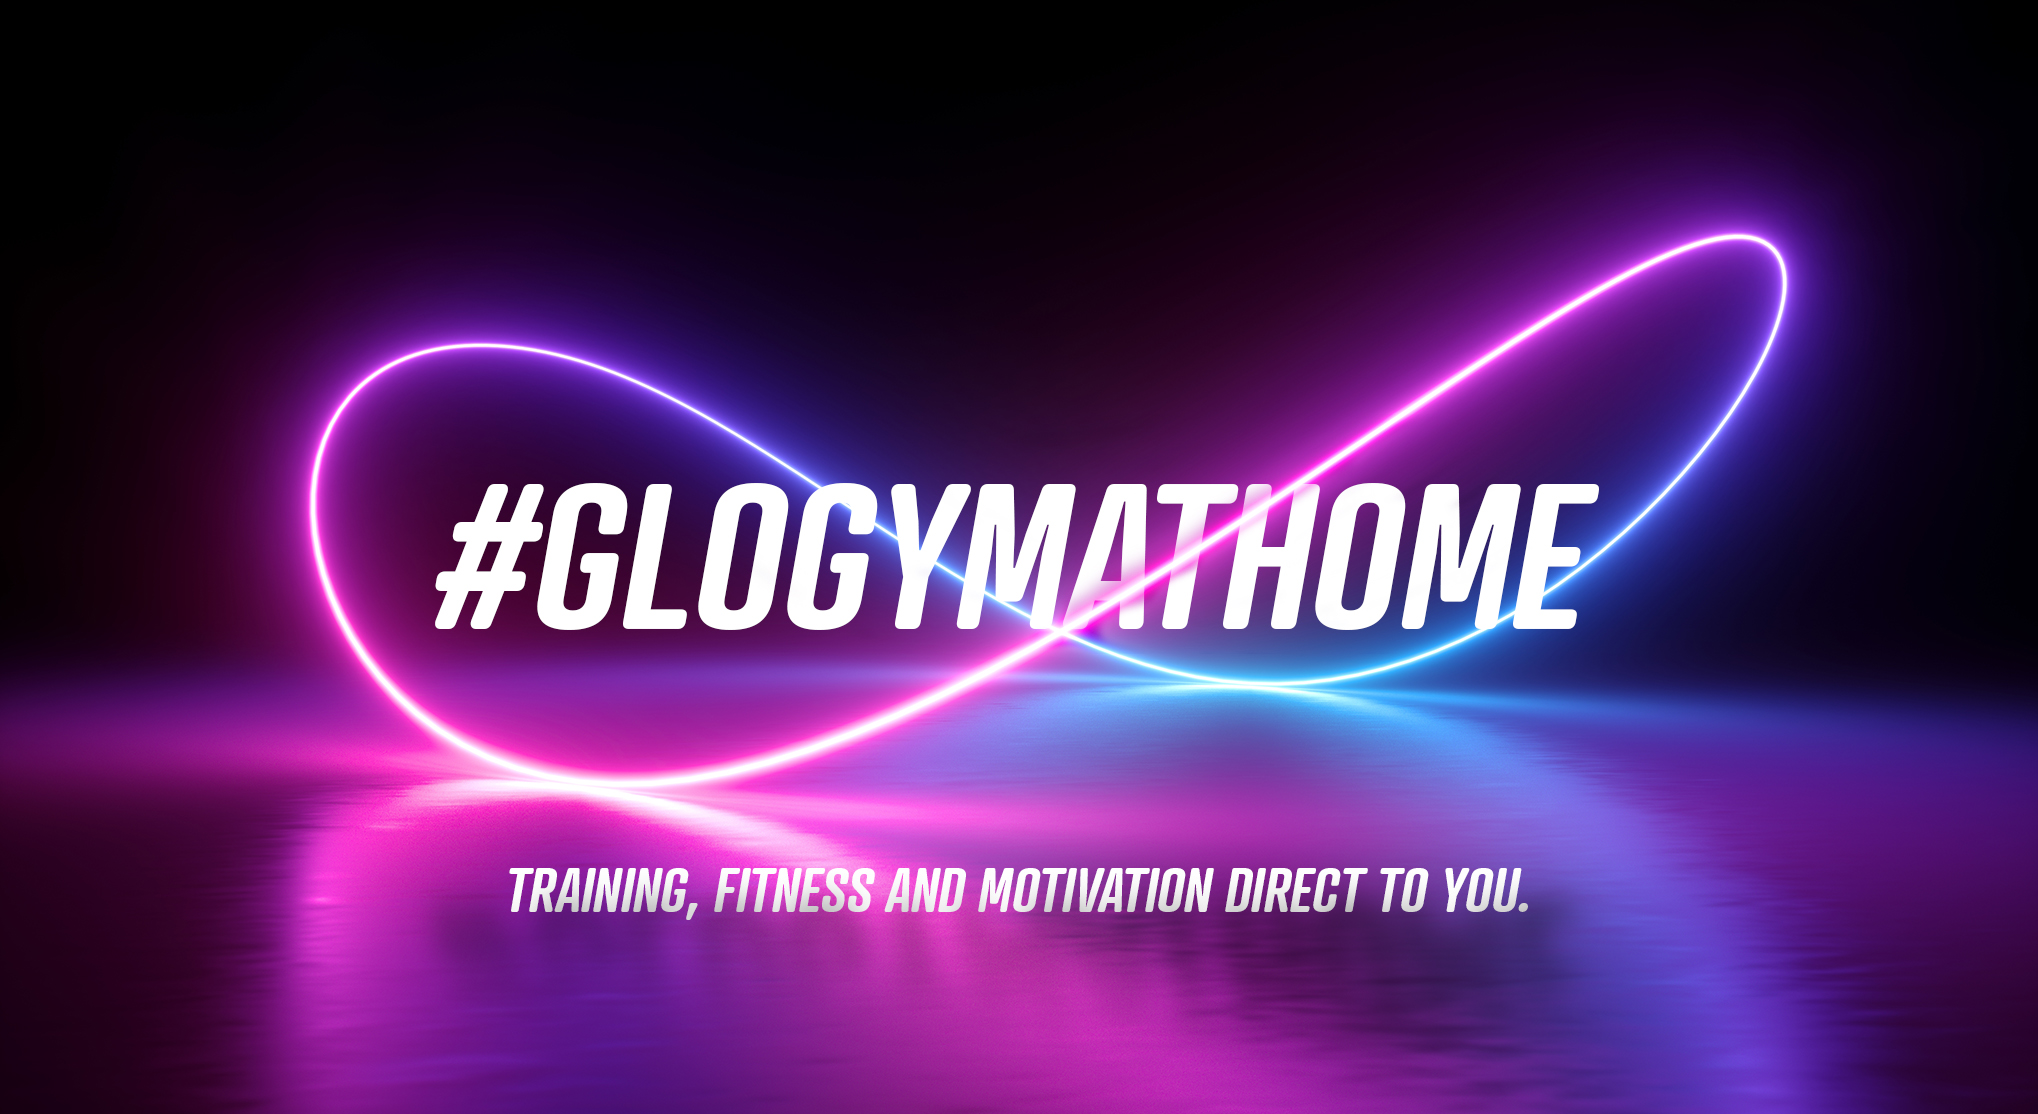 Glo Gym at Home